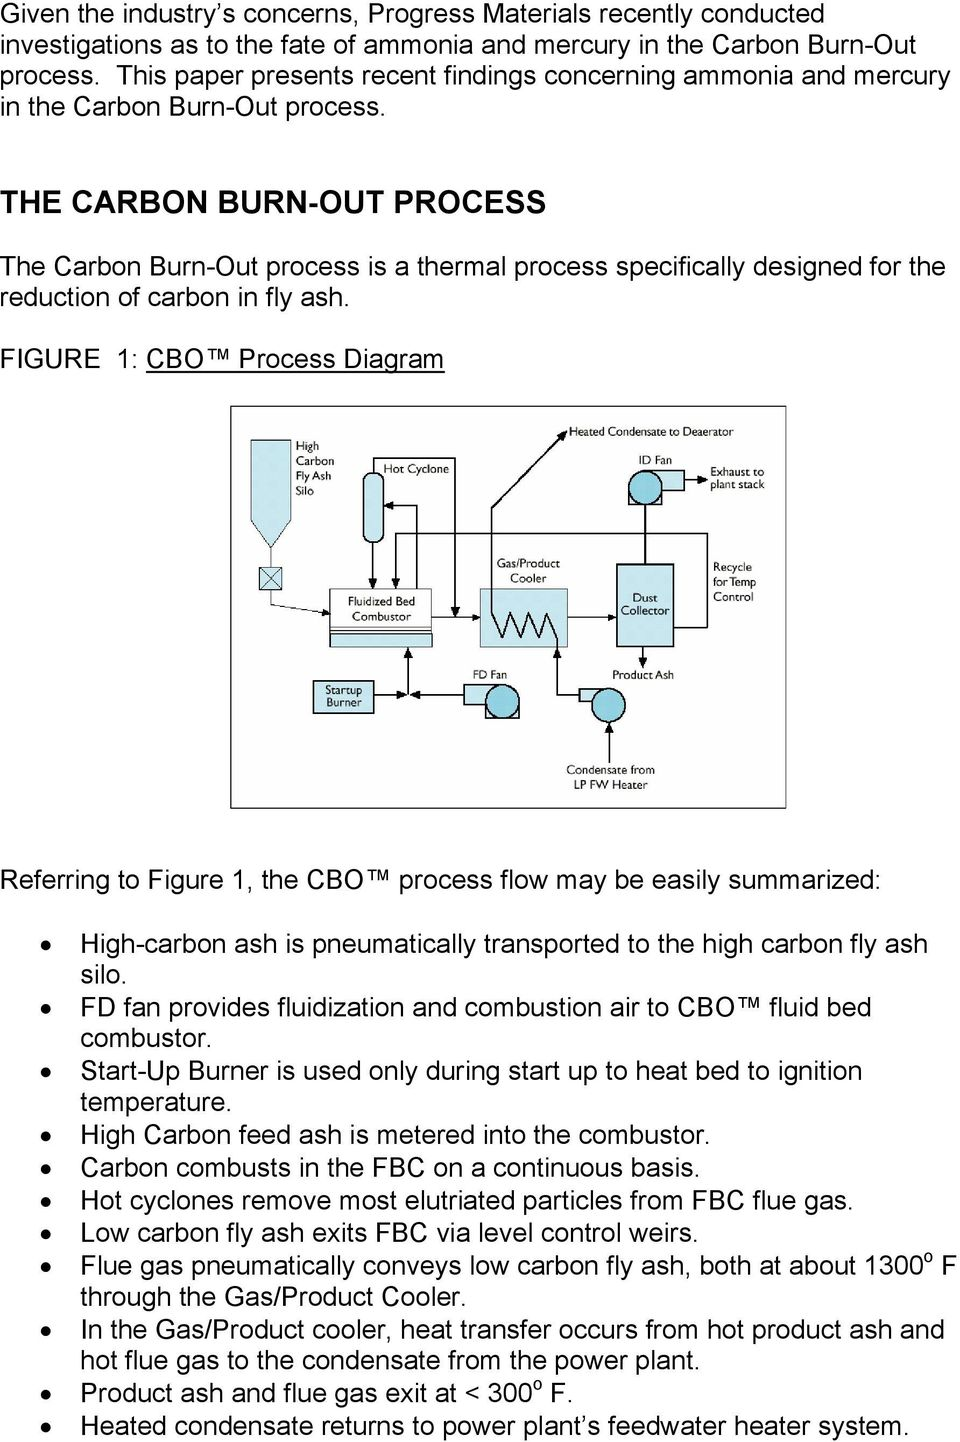 THE CARBON BURN-OUT PROCESS The Carbon Burn-Out process is a thermal process specifically designed for the reduction of carbon in fly ash.